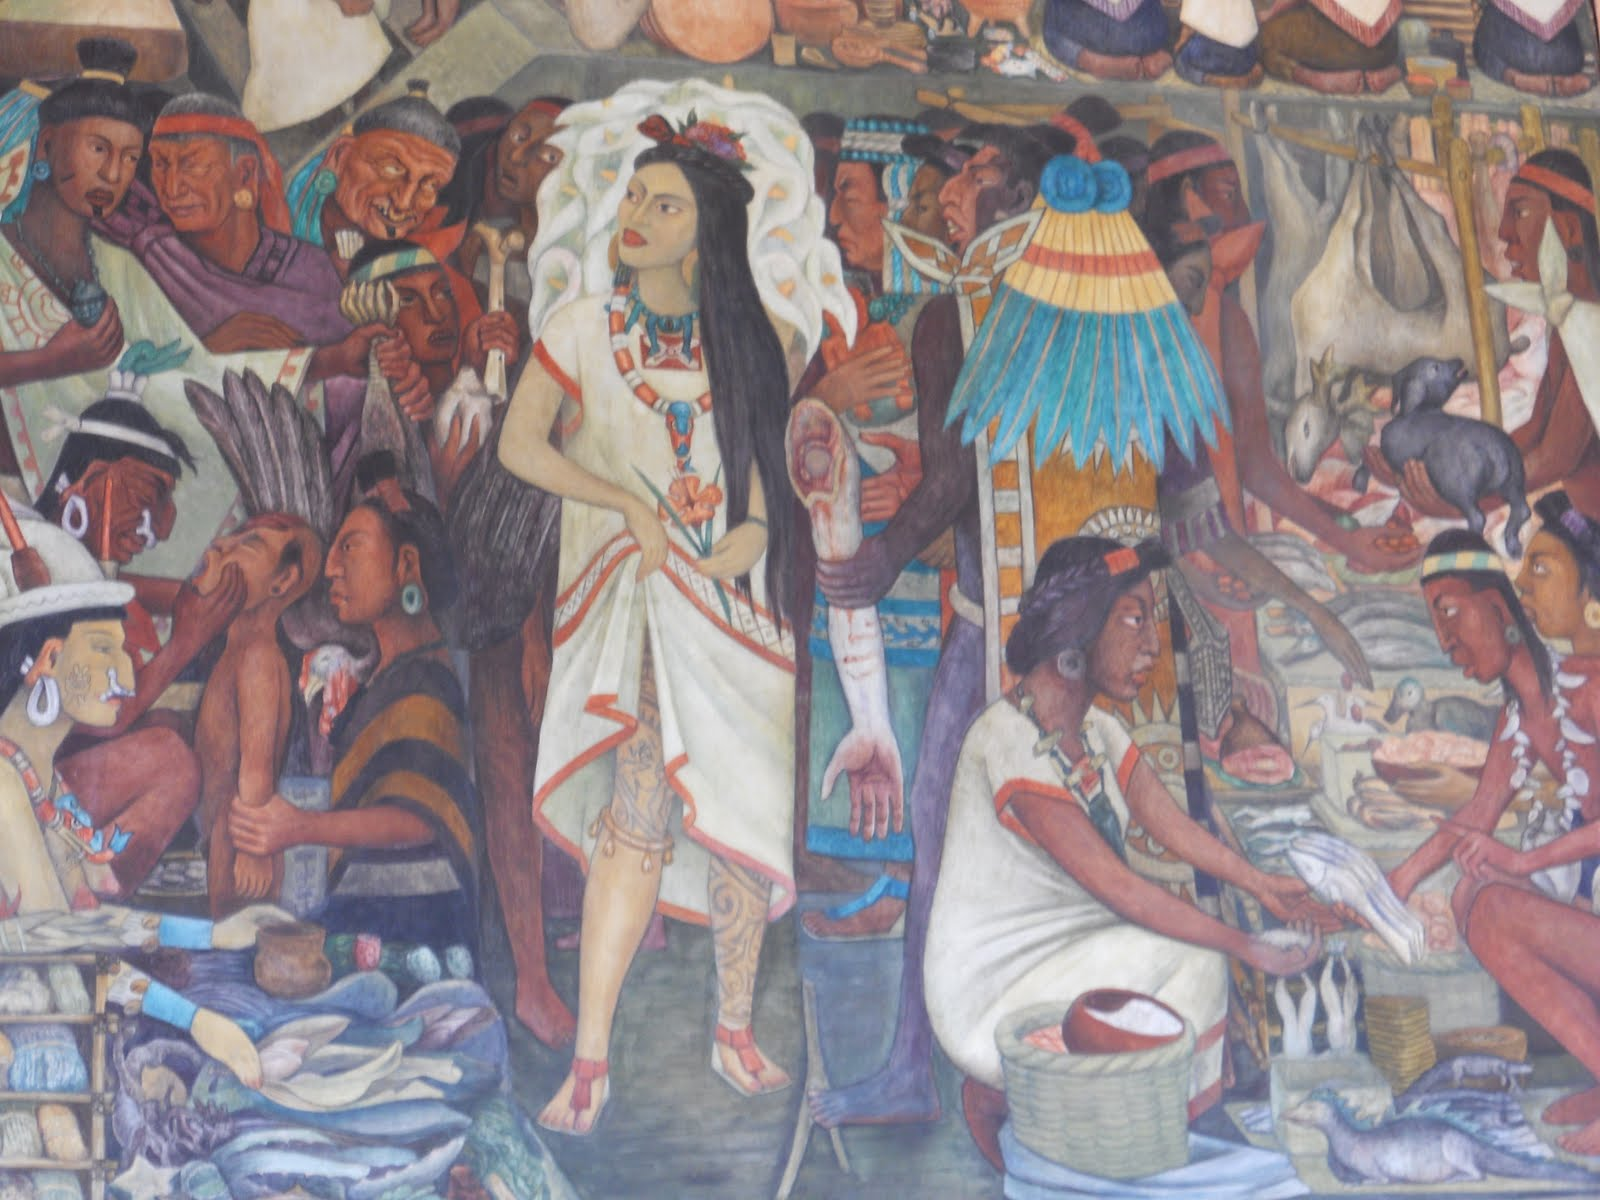 diego rivera essays Related documents: seeing the liberation of the peon by diego rivera essay the san diego crises essays the san diego crises an american lung association study of air quality across the united states says san diego's air is getting steadily cleaner.